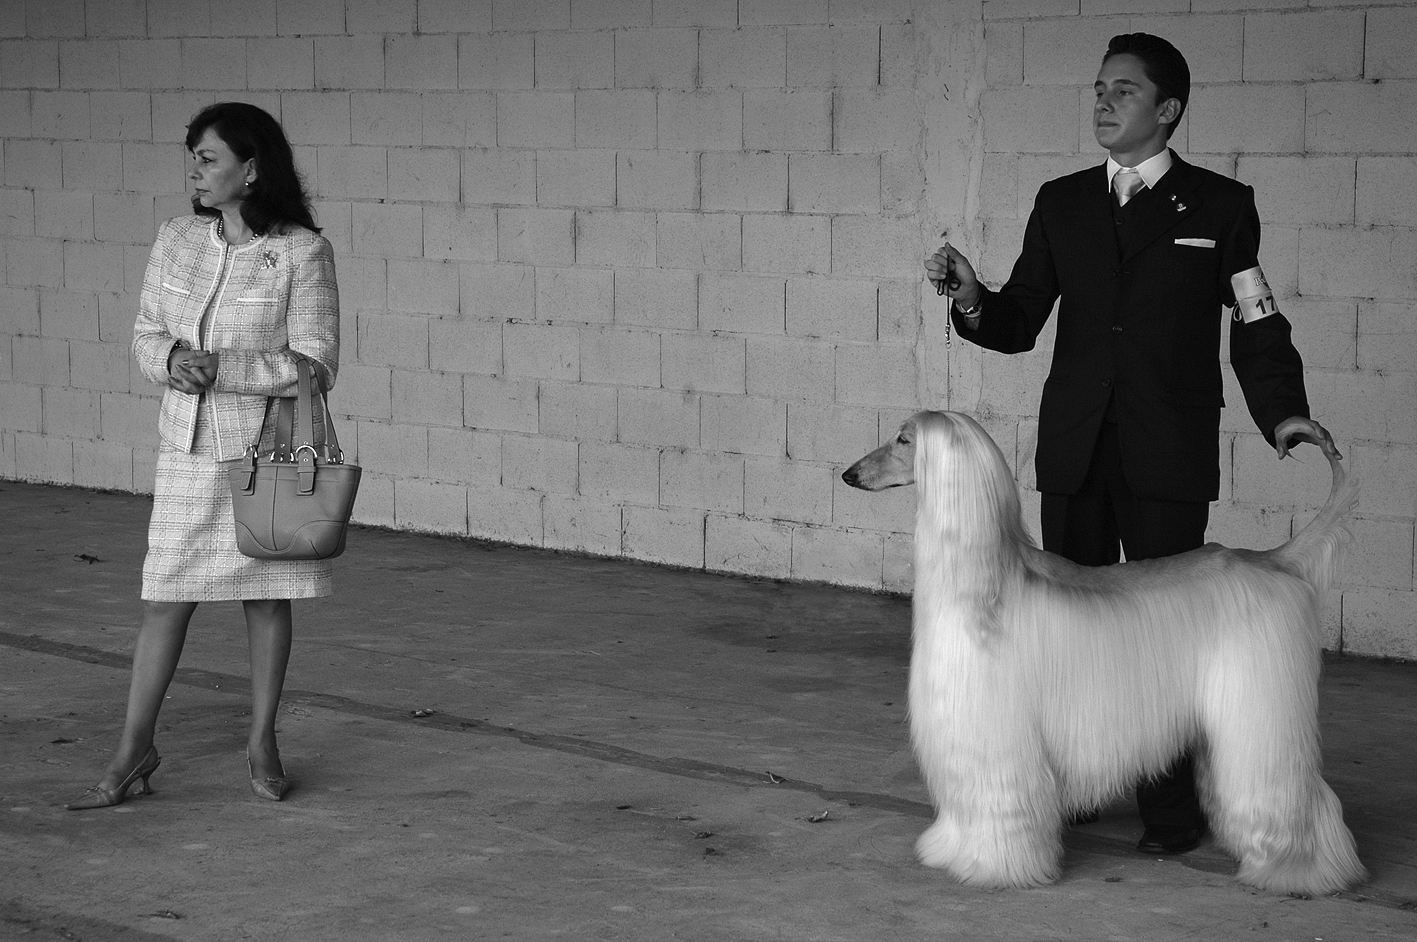 Dog show, Buenos Aires, 2005.